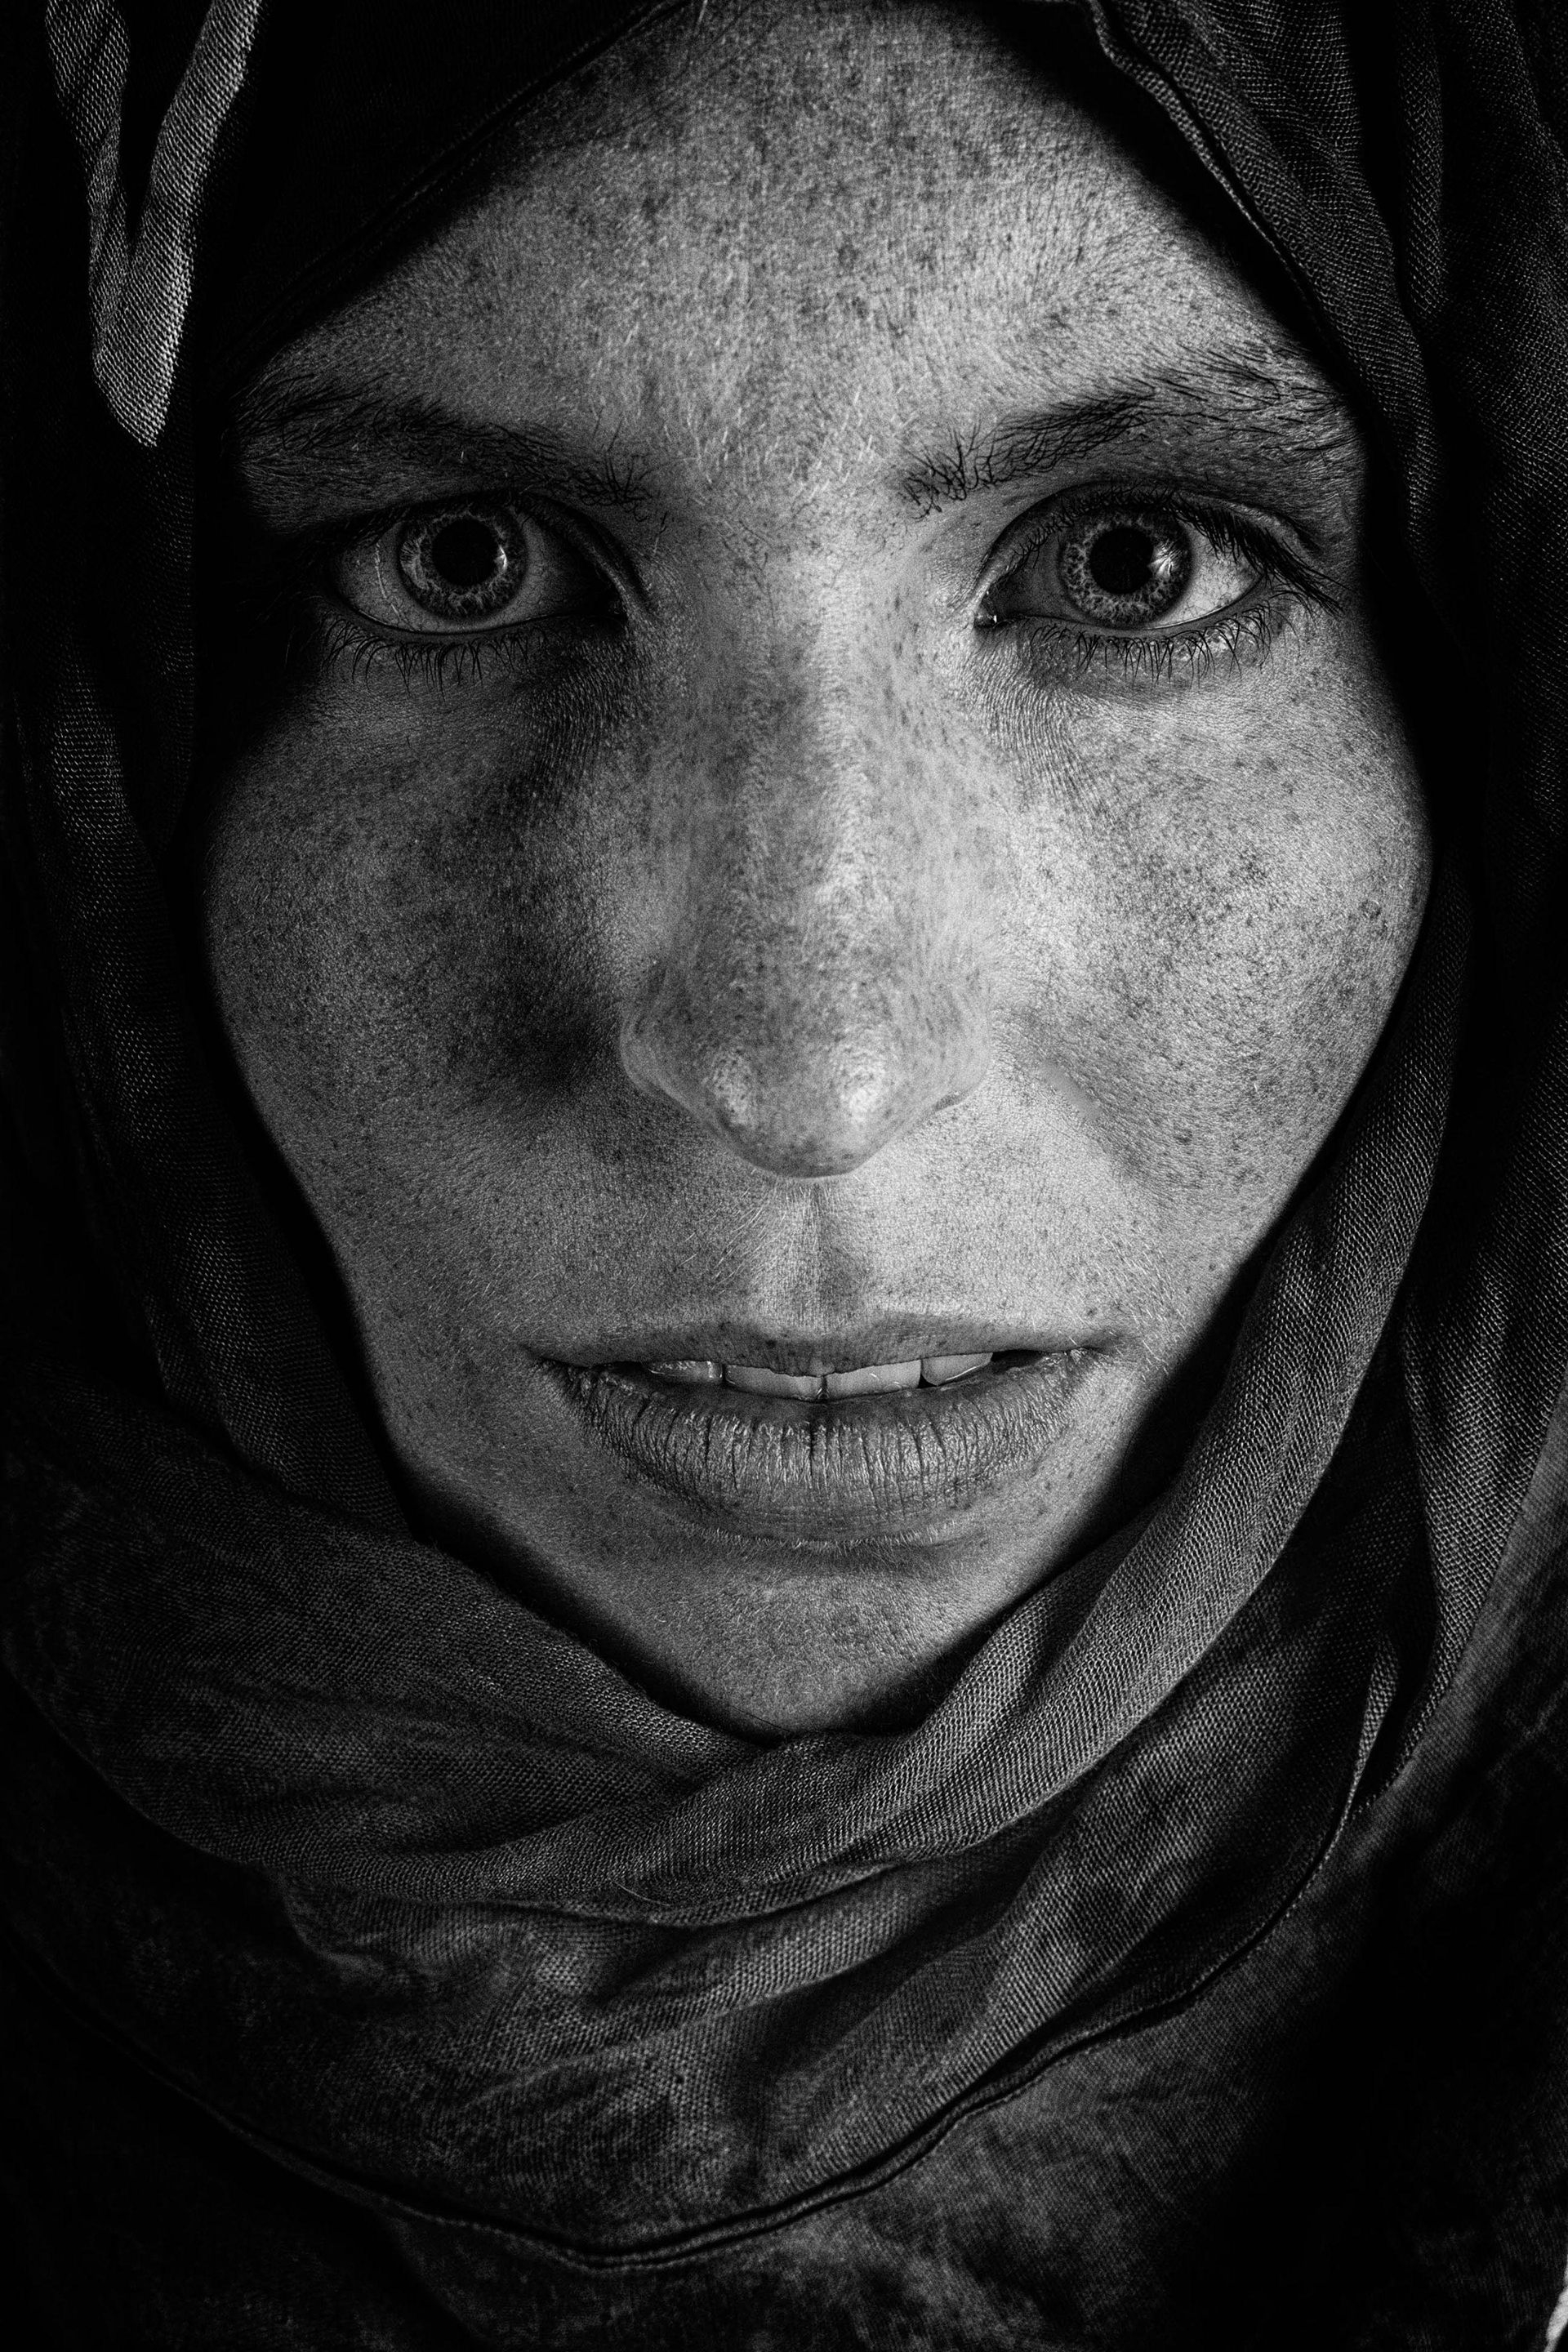 Photograph by Joel Bourgoin, National Geographic Your Shot